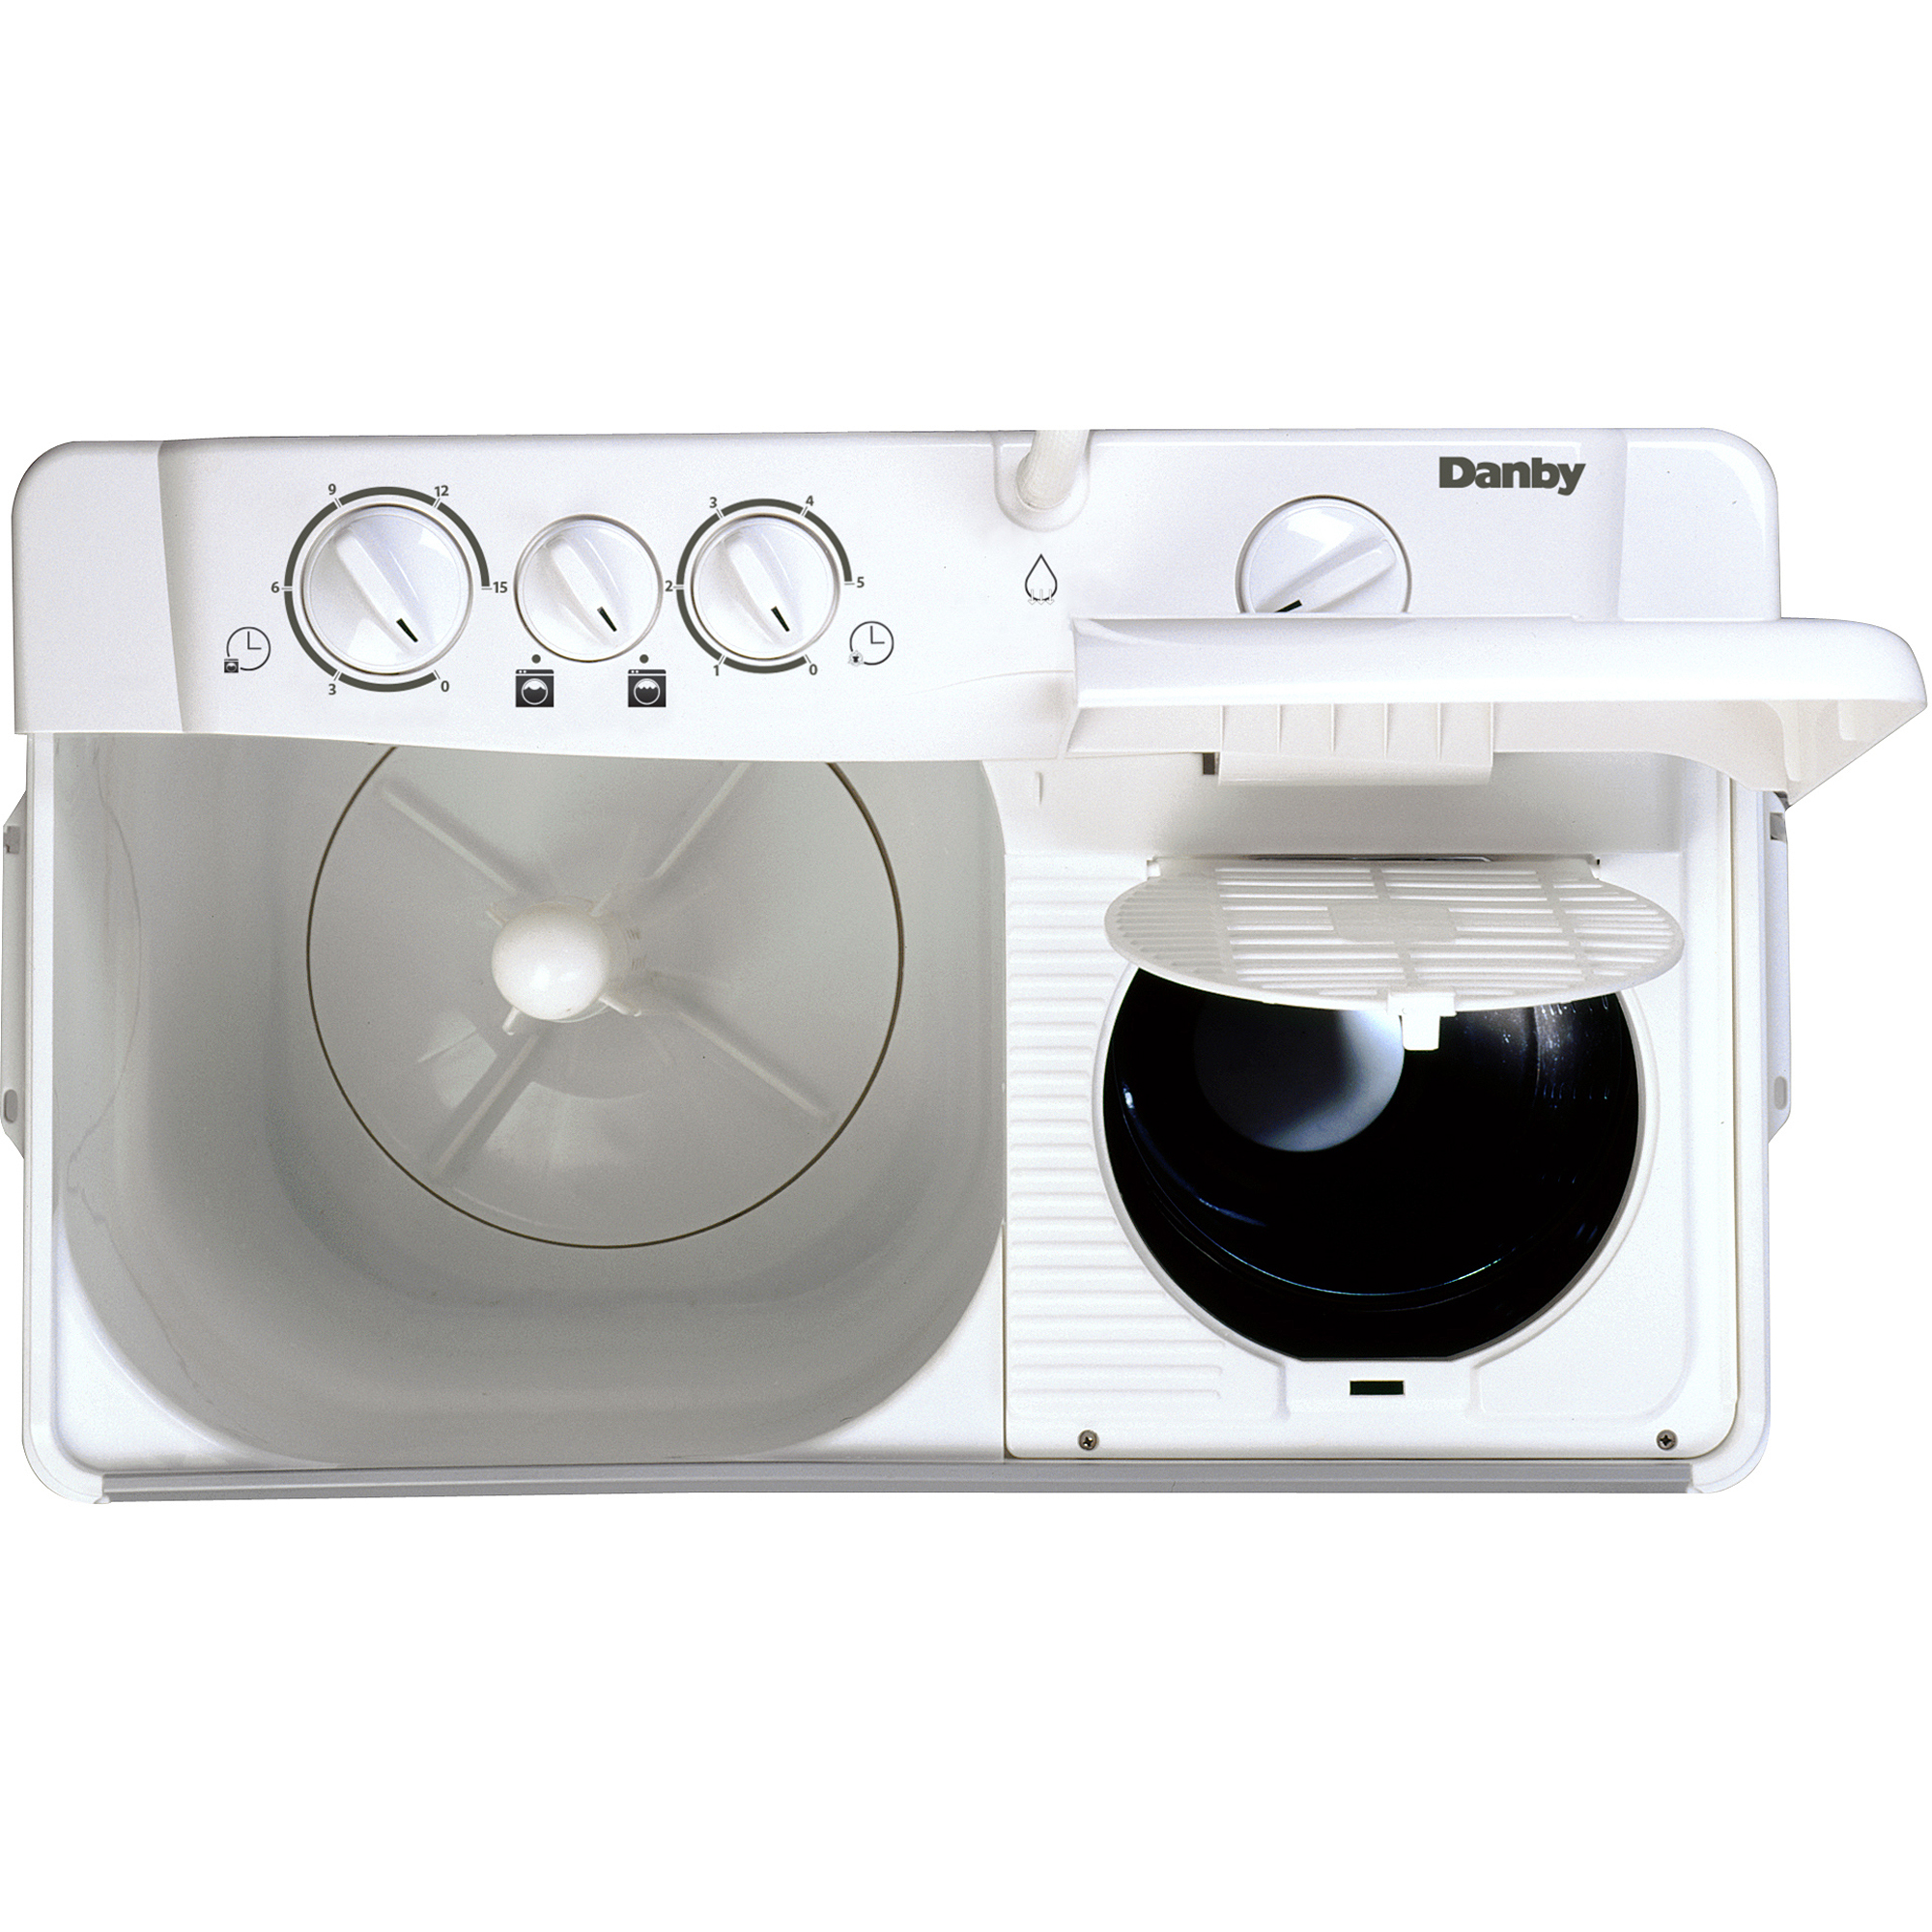 Danby 2.26 cu ft Twin Tub Washing Machine with Spin Dry, White